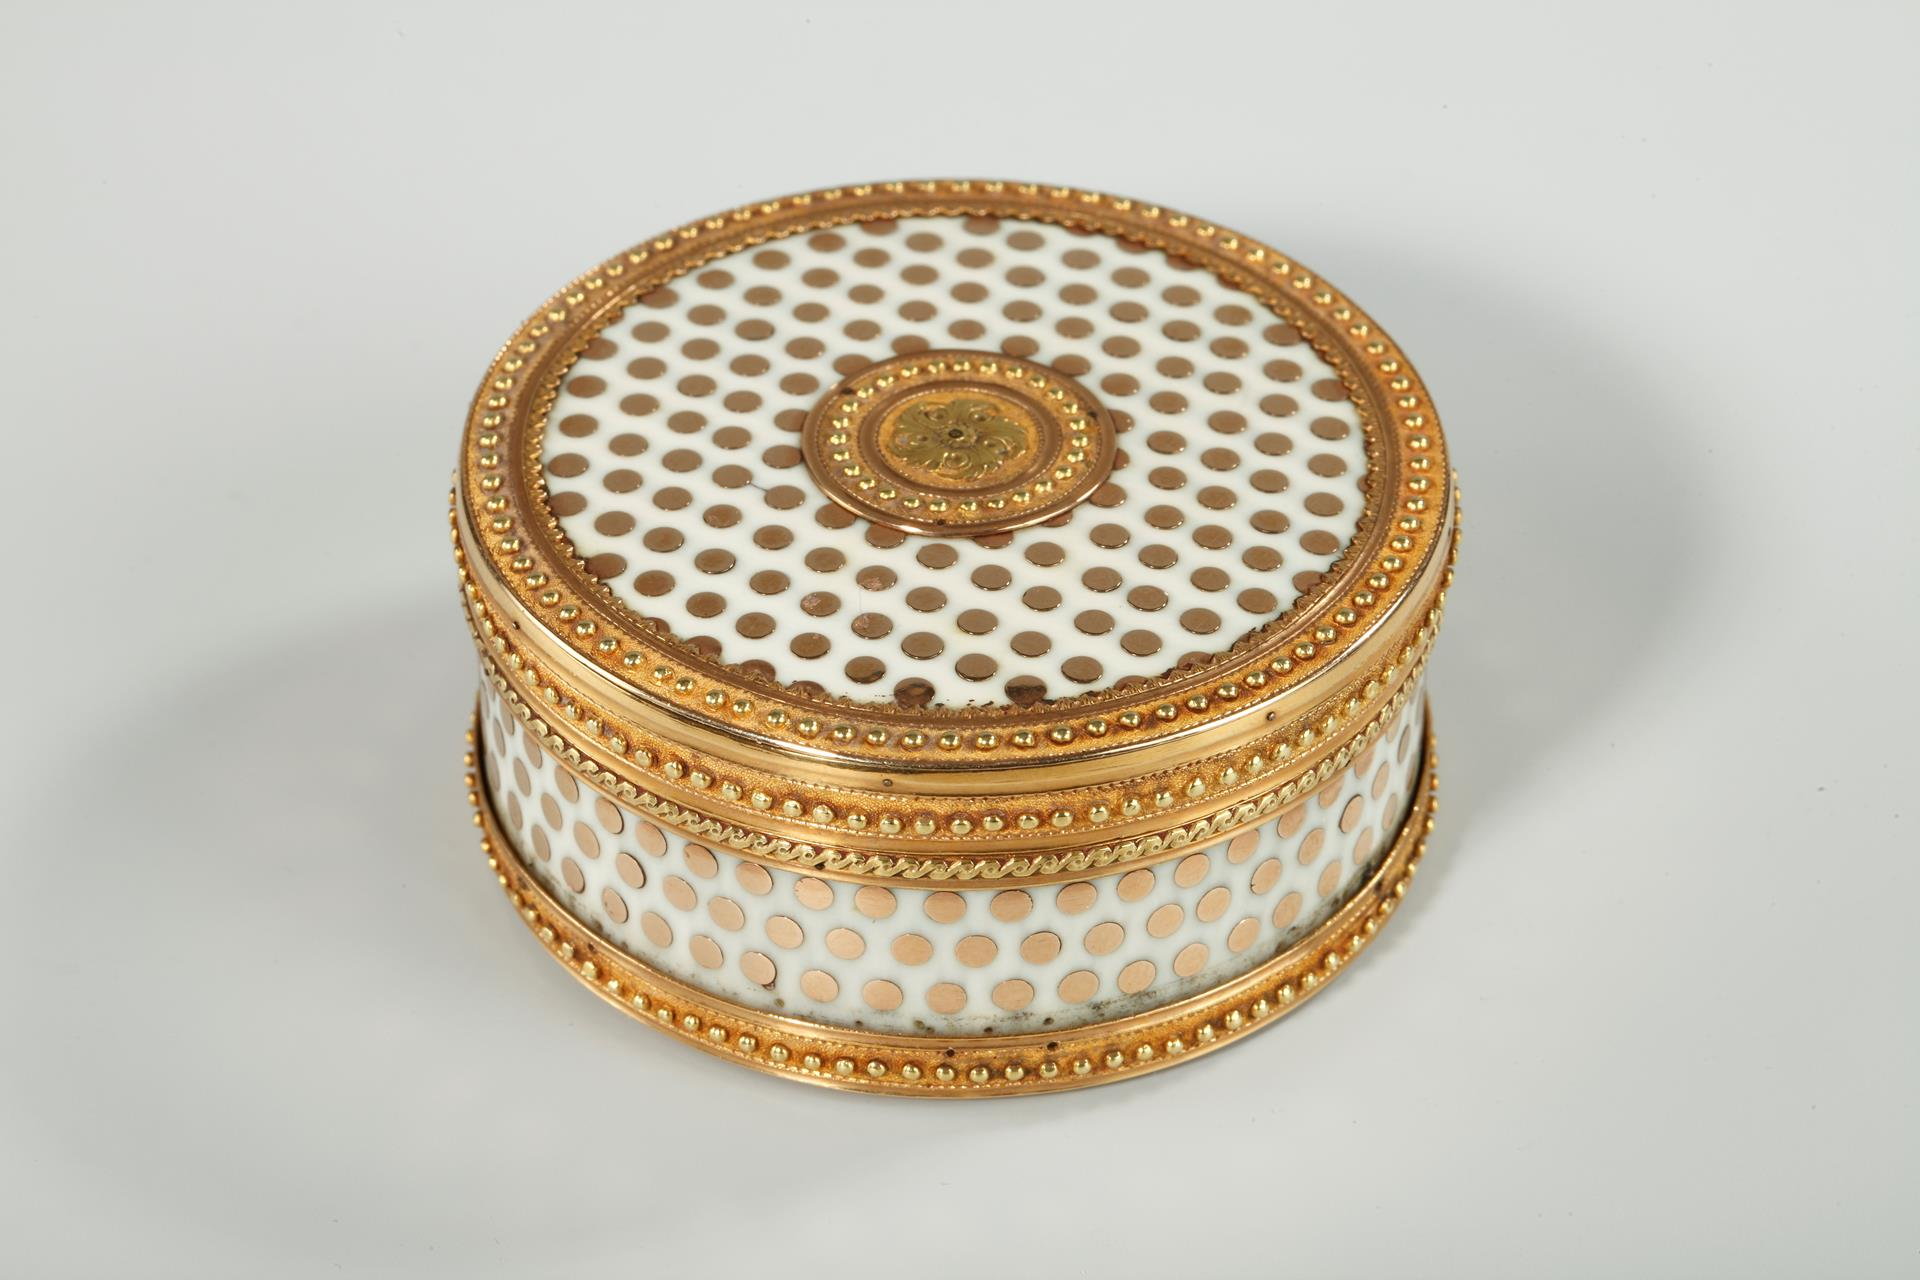 GOLD AND ENAMEL BONBONNIERE.<br/> LATE 18TH CENTURY FRENCH CRAFSMANSHIP.